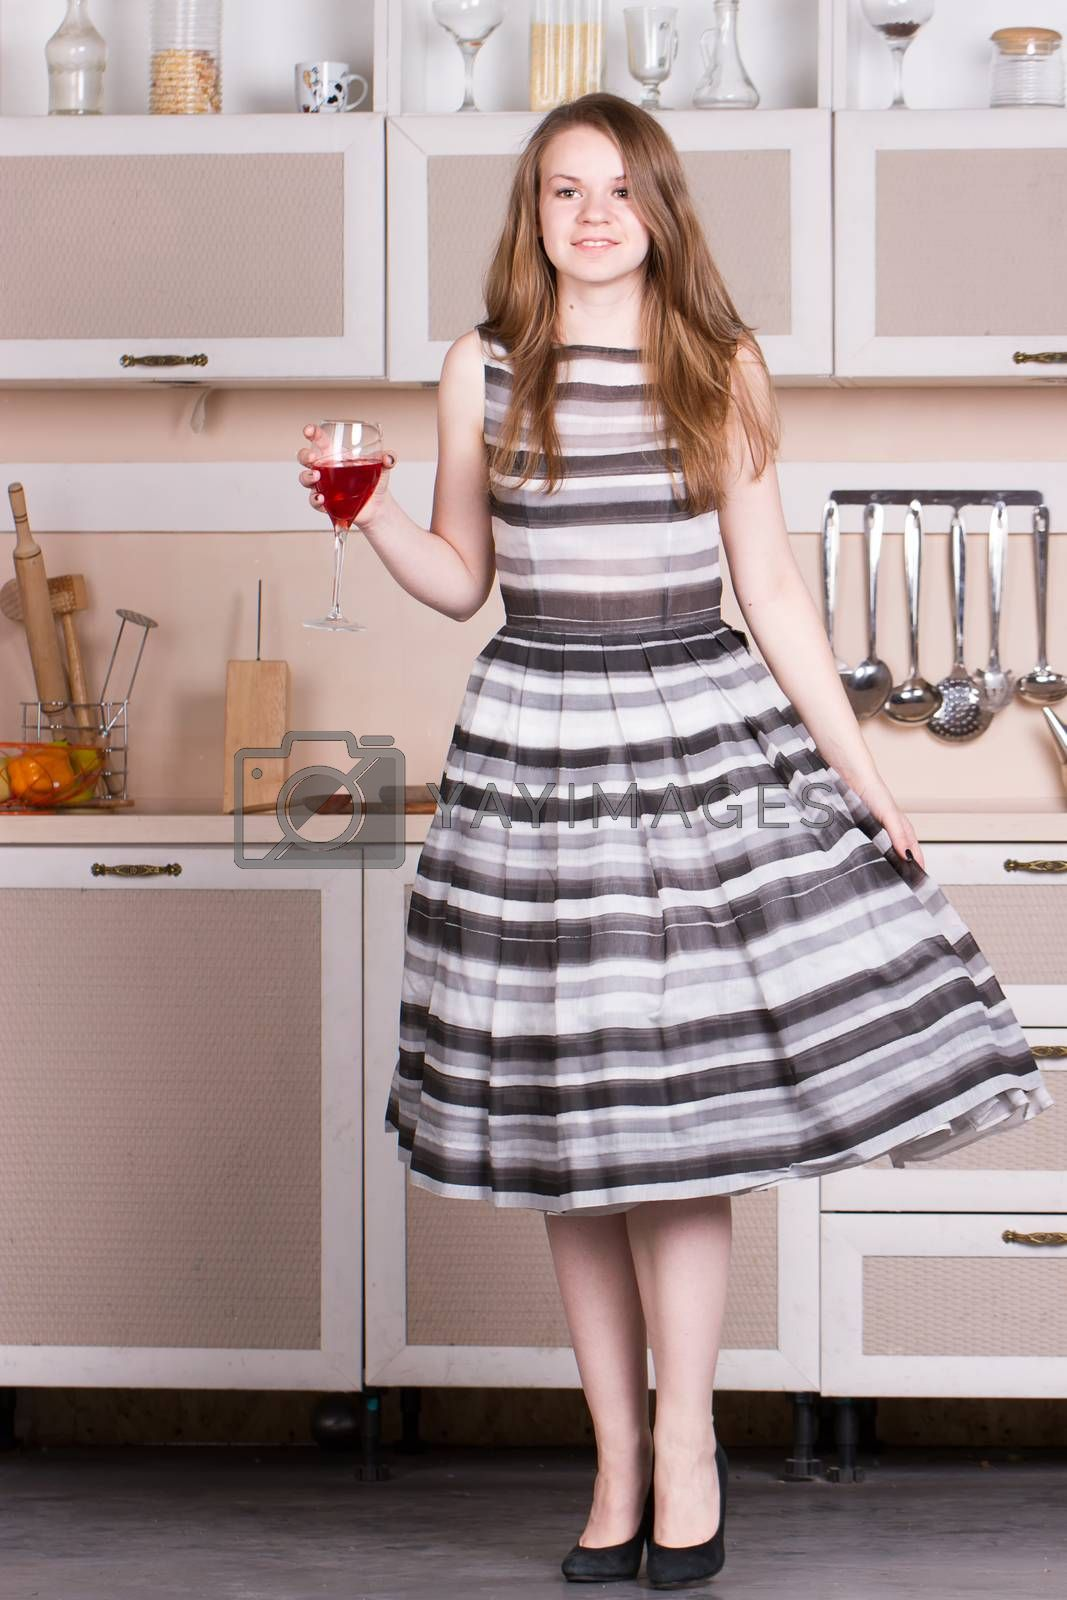 Attractive young woman dress holding a glass of wine in her kitchen. by victosha